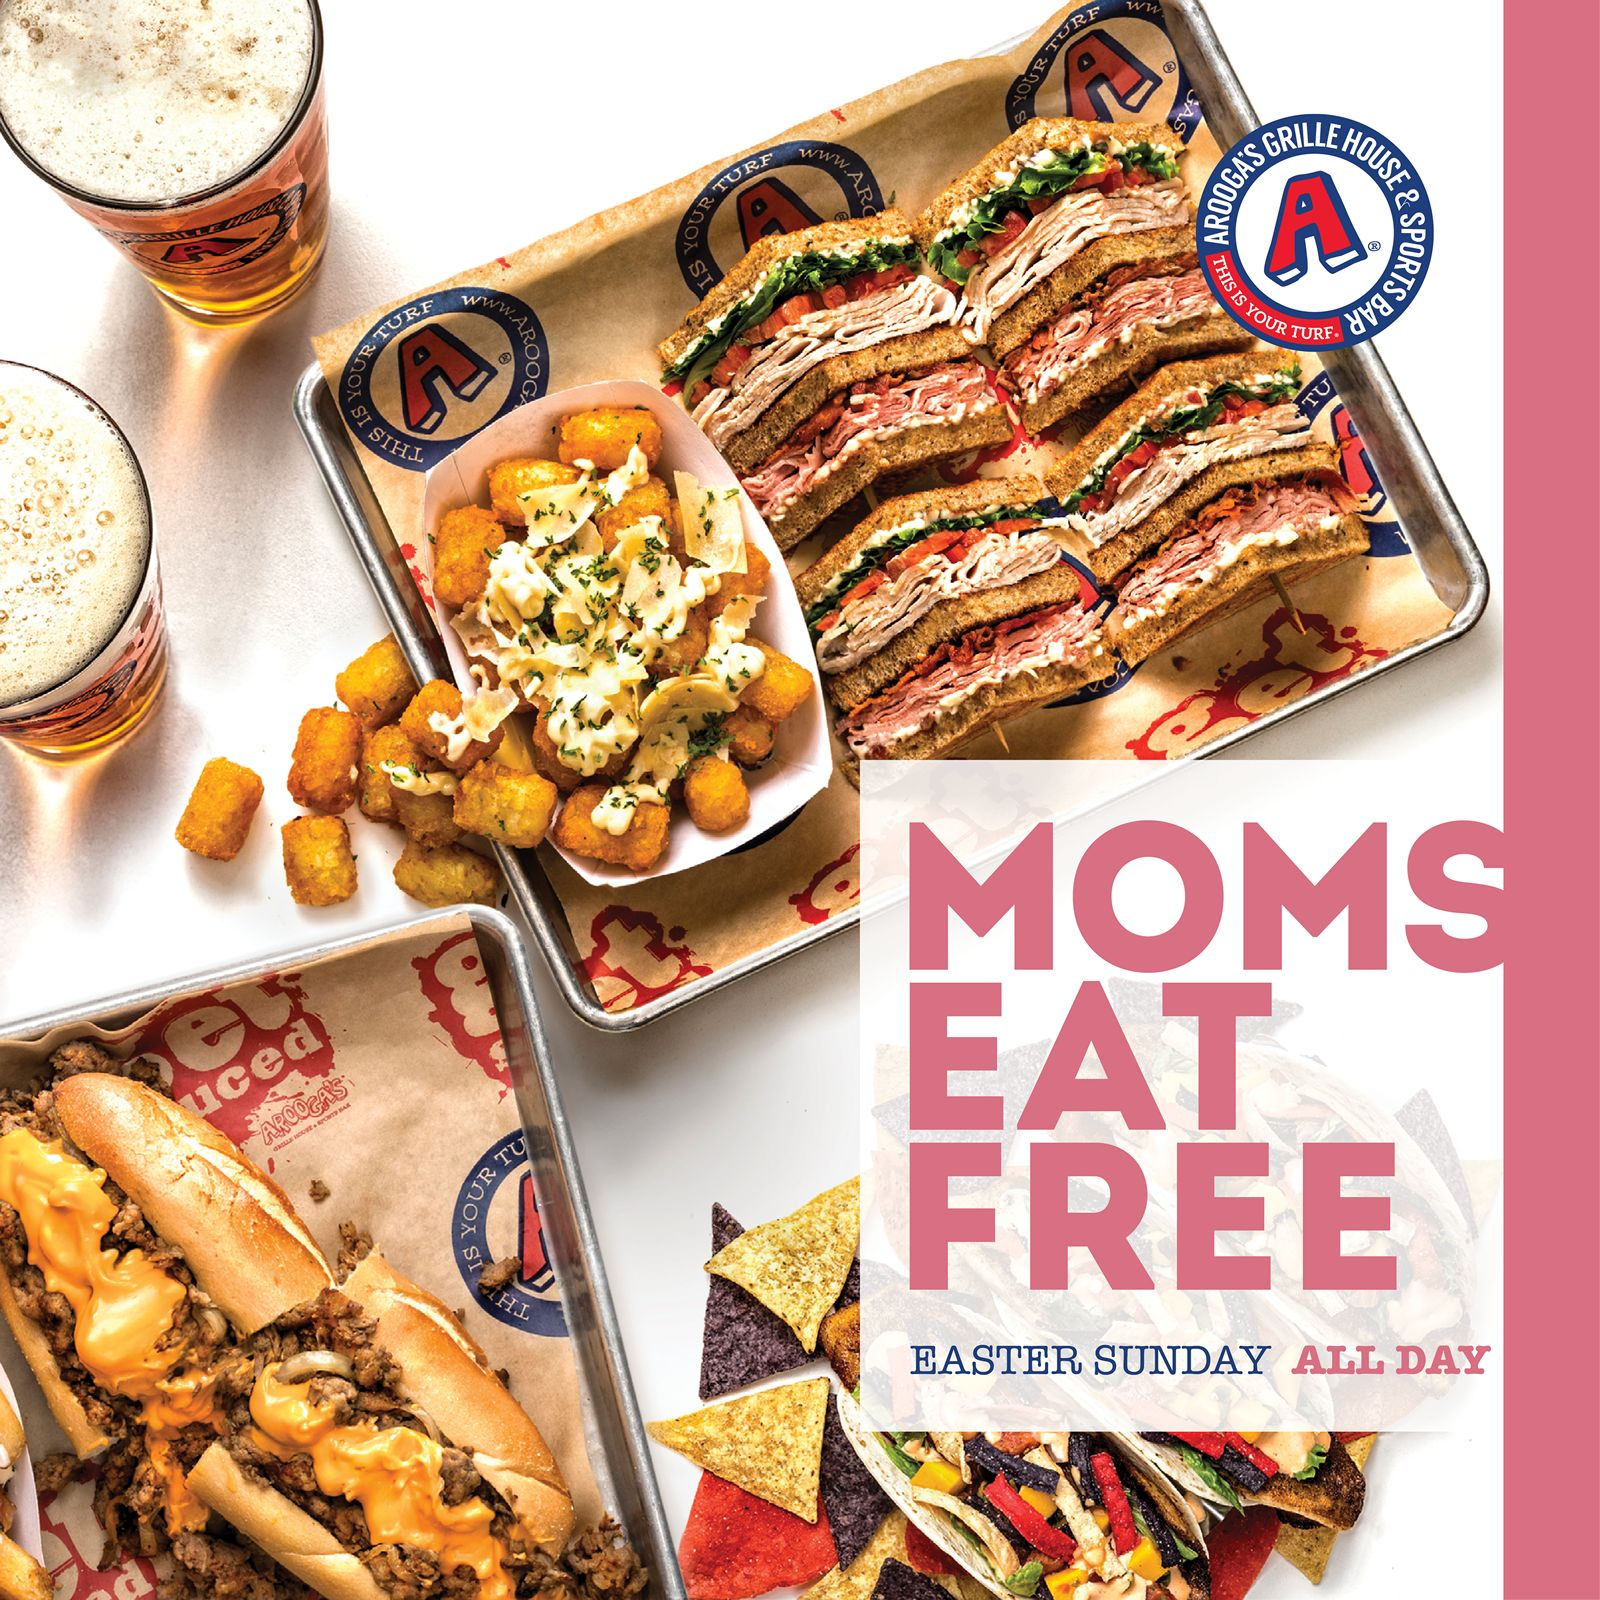 Arooga's Offering Free Meals for Moms Easter Sunday